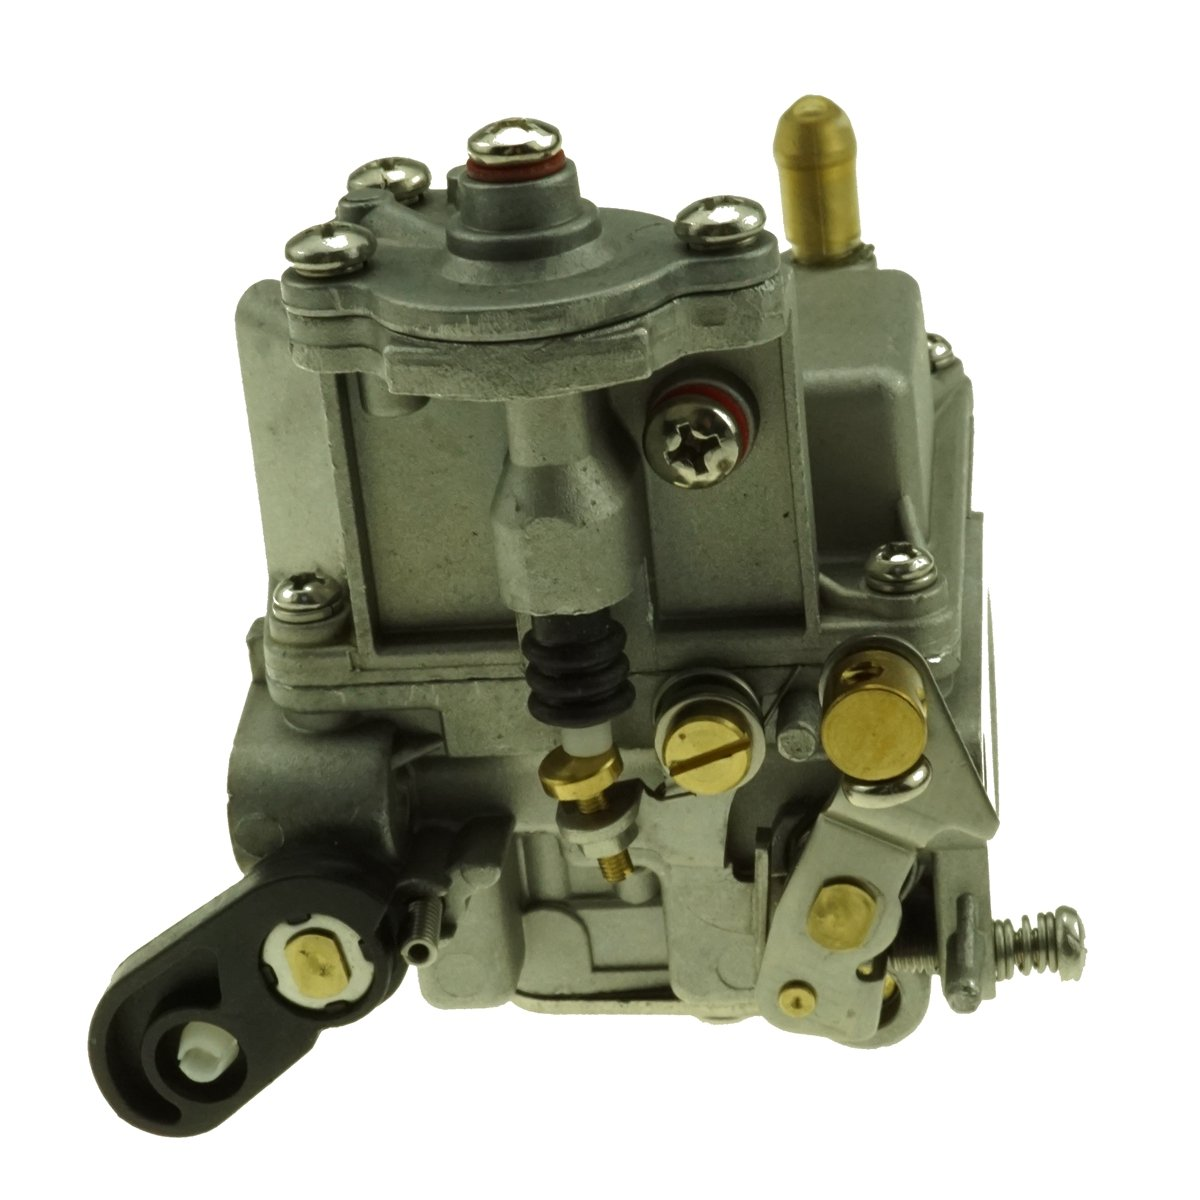 Uanofcn New Carburetor Assy for Yamaha 4-Stroke 15hp F15